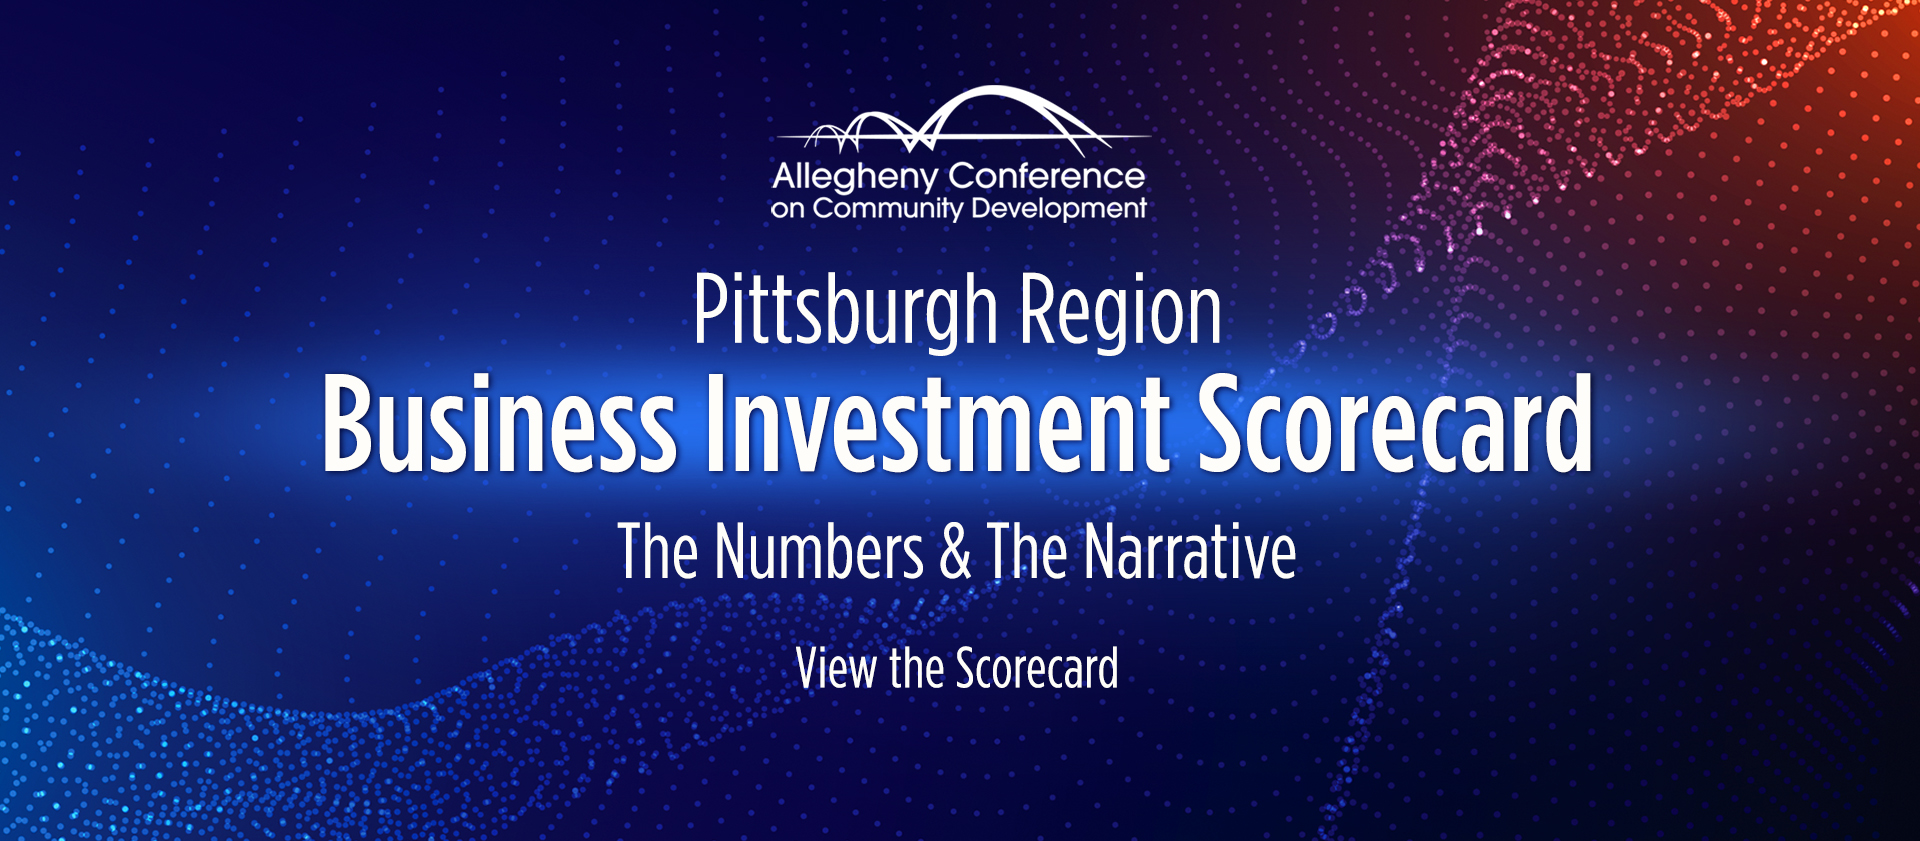 Allegheny Conference — Home